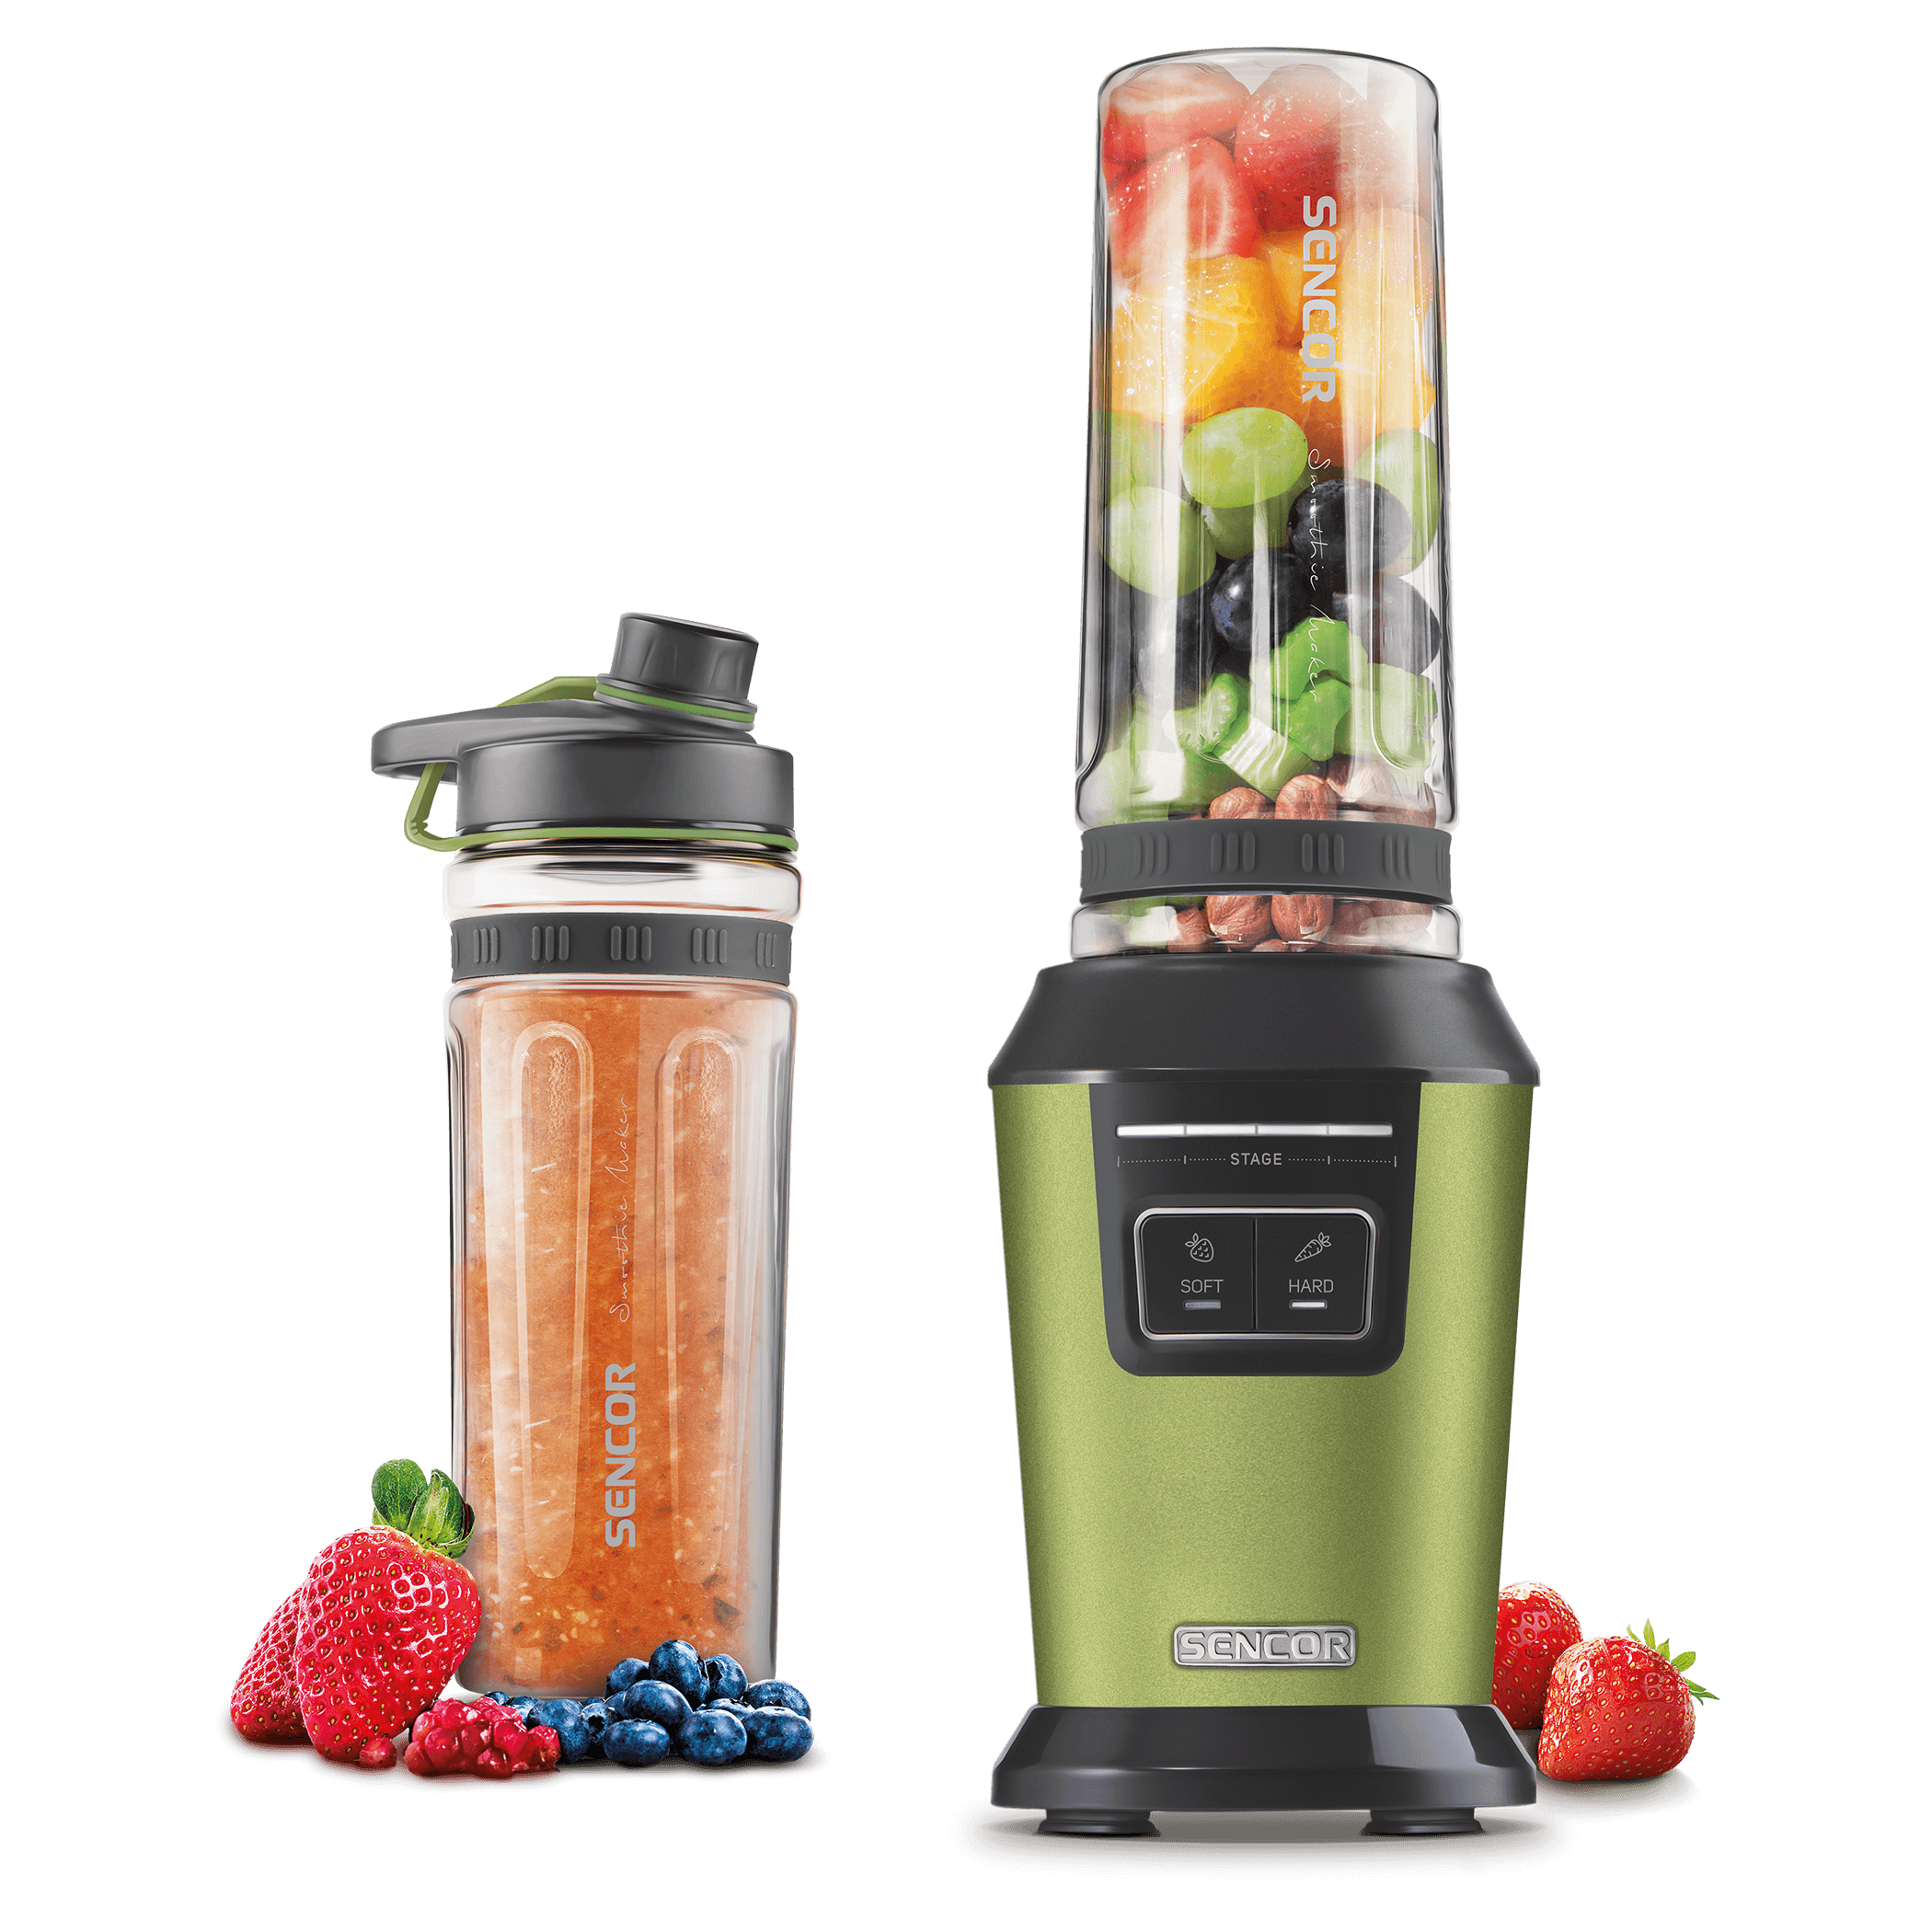 term/fokateg/SBL_7070GG_Smoothie_maker_SENCOR.png